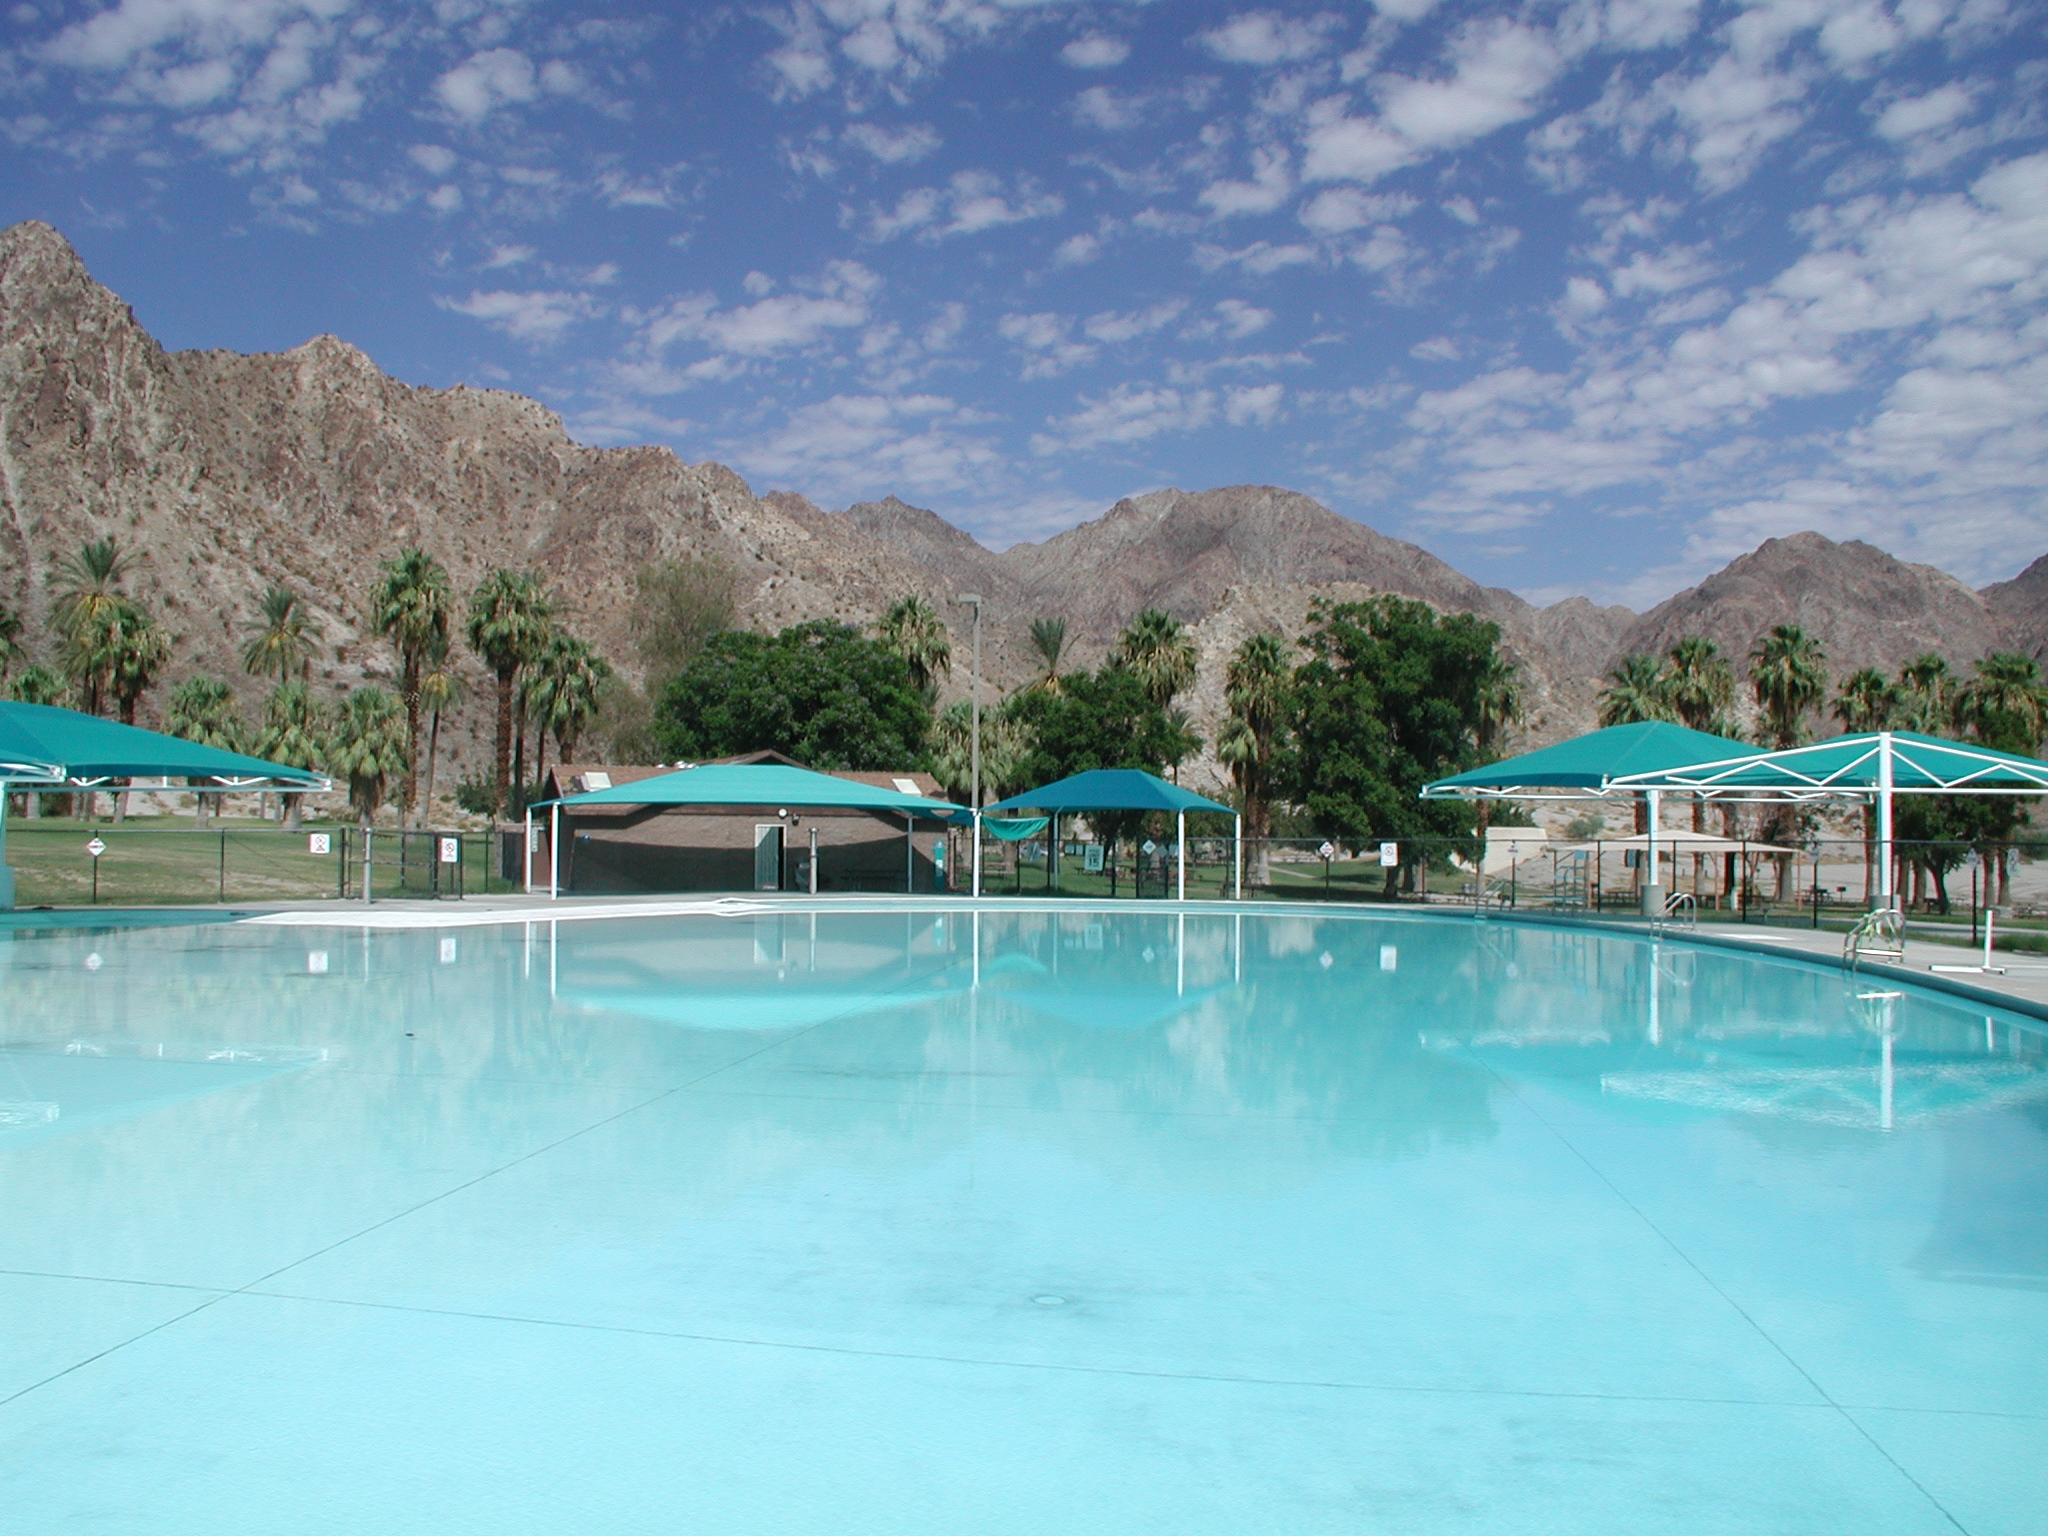 Swimming pool at Cahuilla